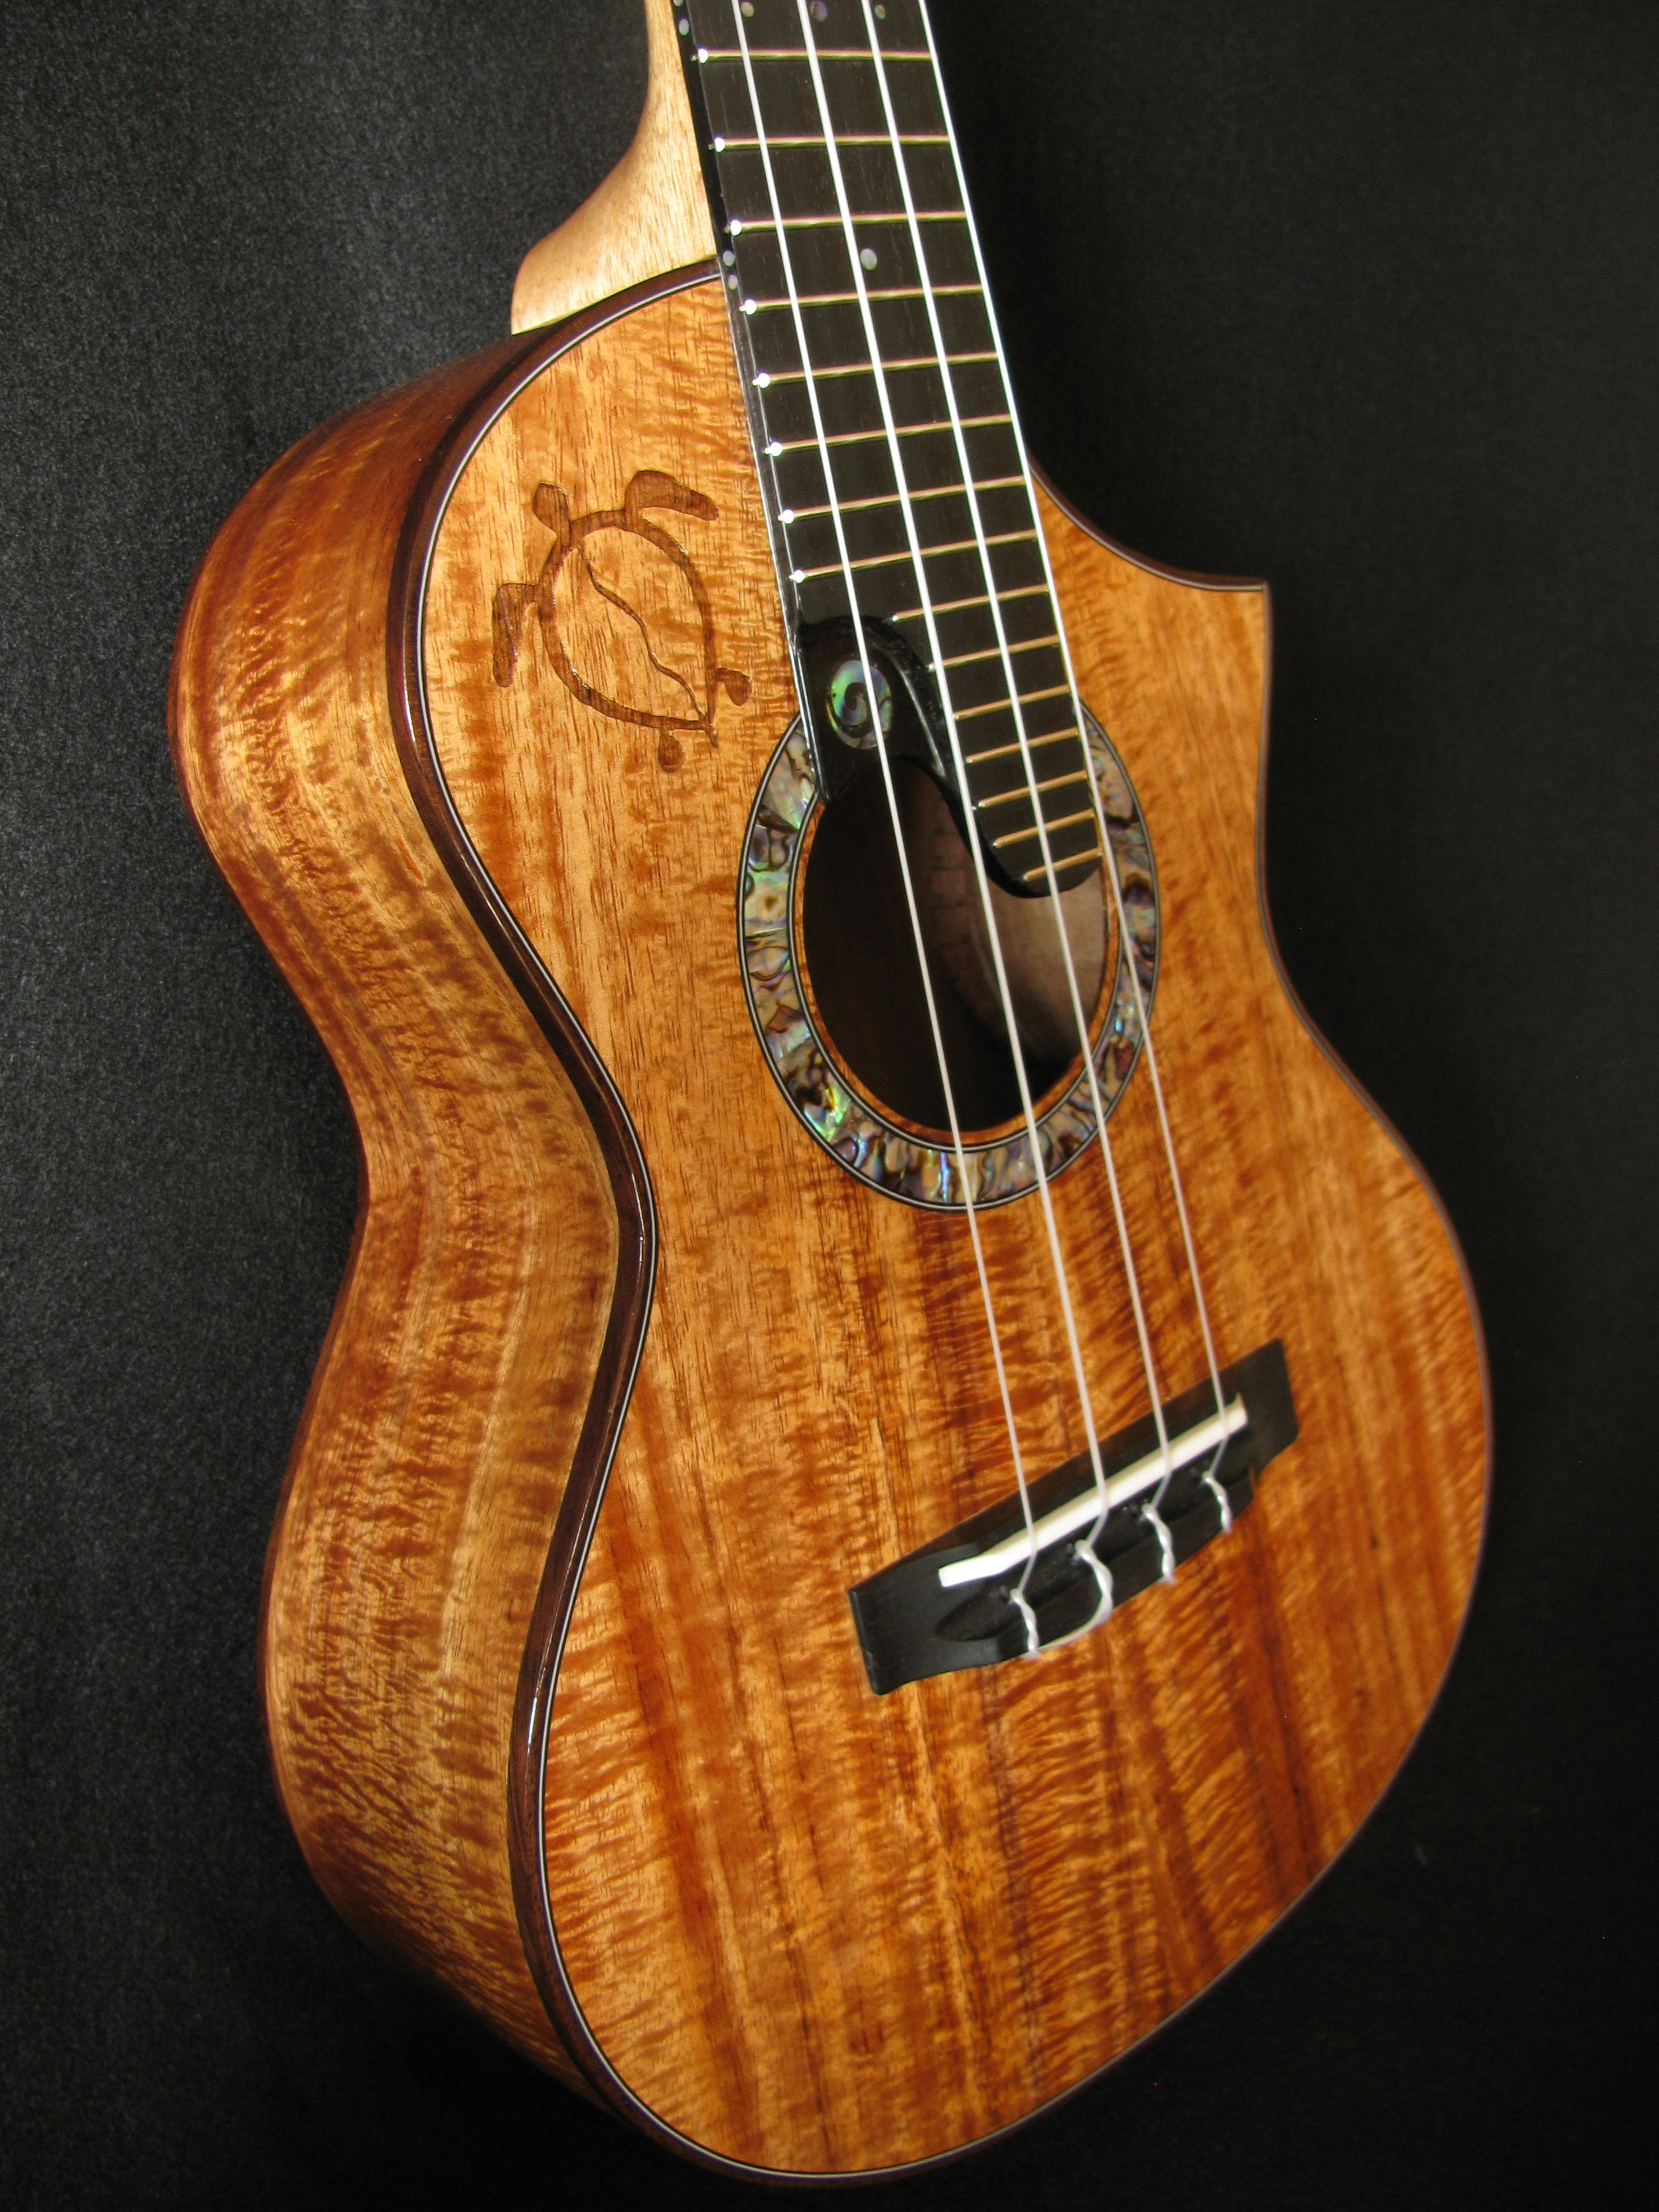 Extended Fretboard with inlayed logo and engraved Honu, on a all Koa tenor